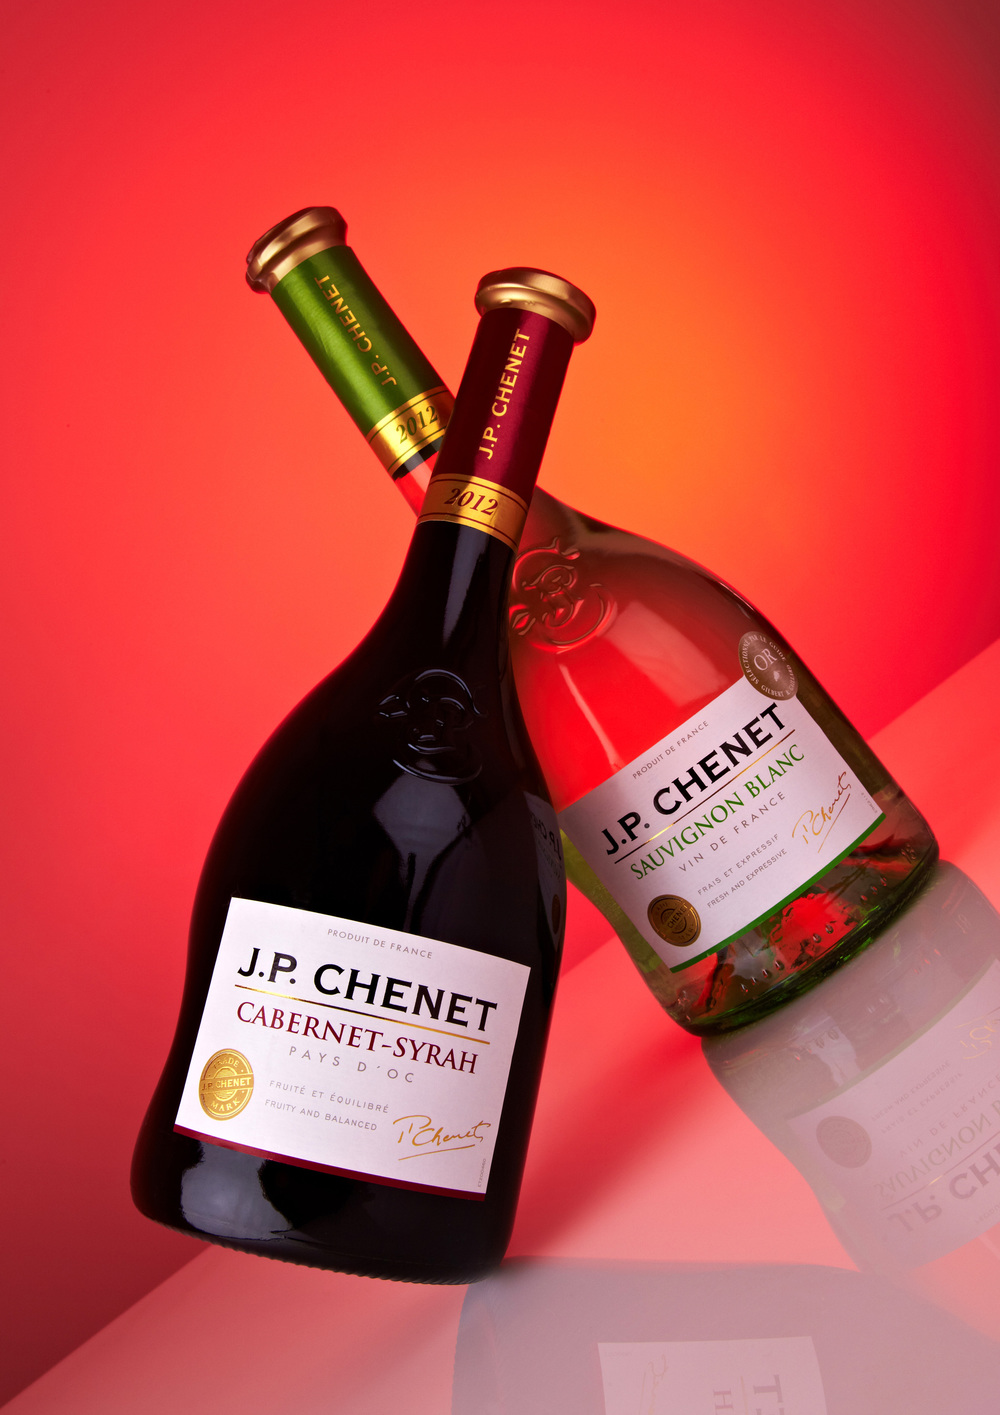 chenet wines on red 14a.jpg